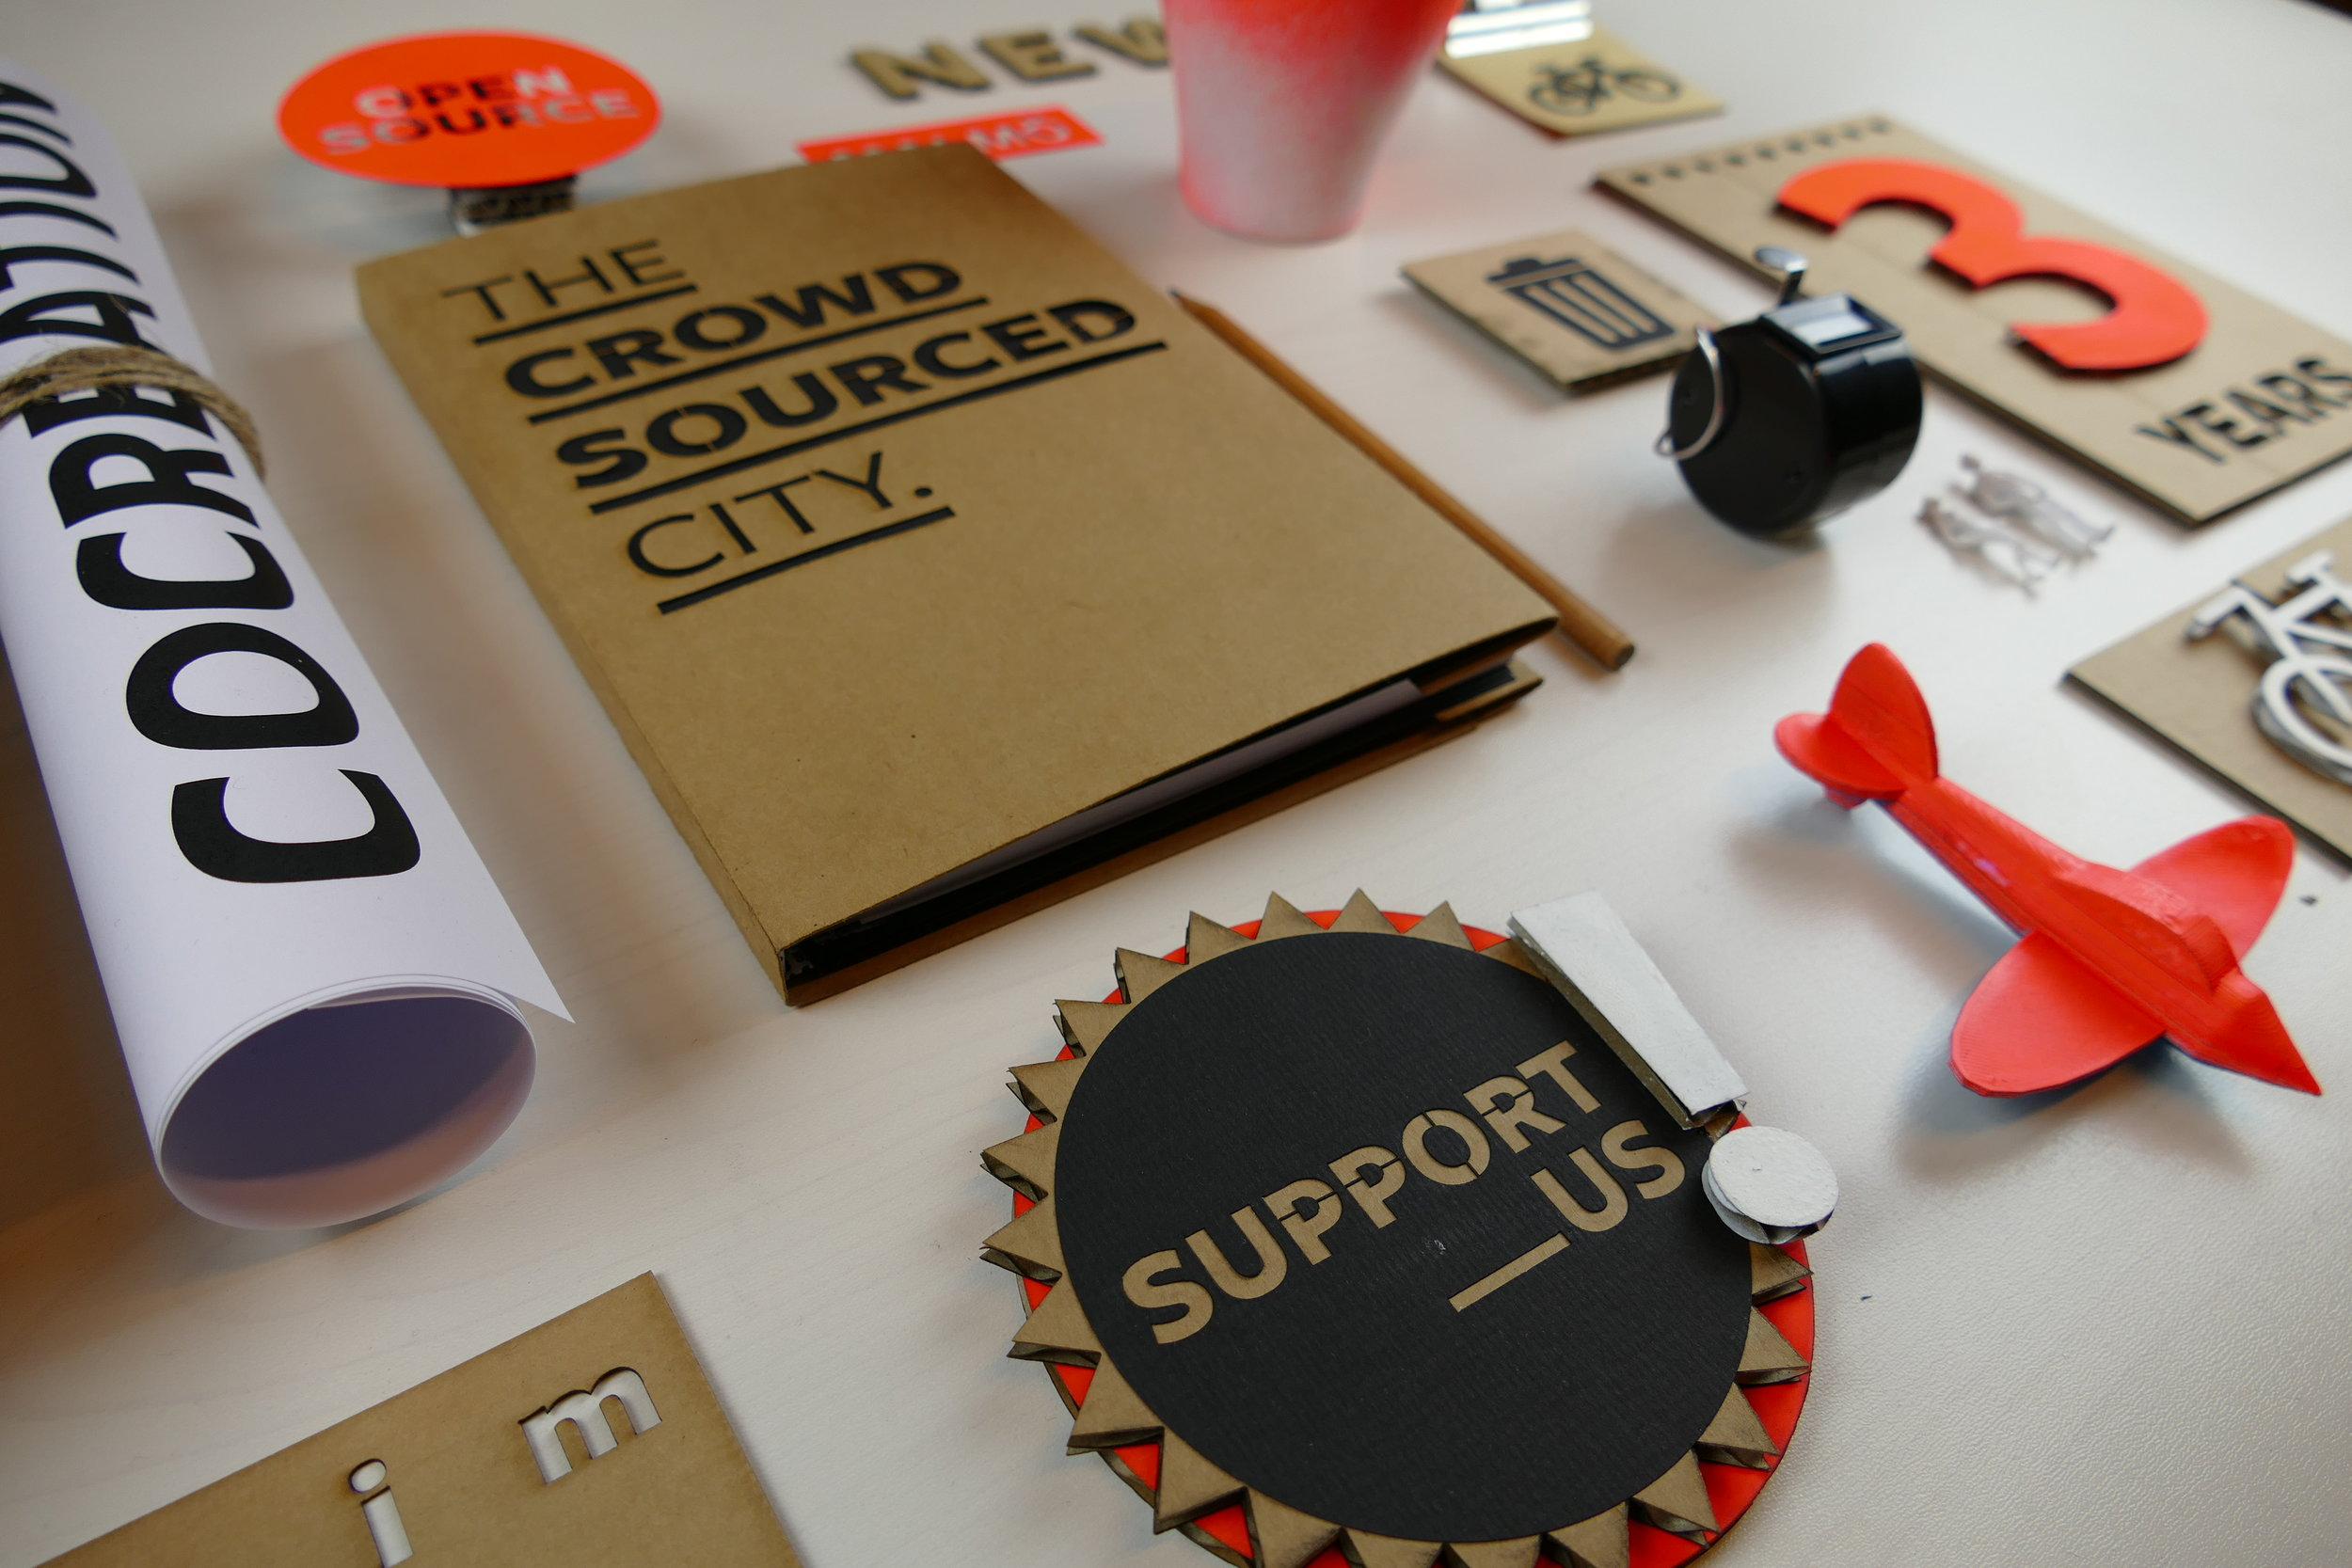 - THE CROWDSOURCED CITYA book about collective intelligence, co-creation and shared space making.